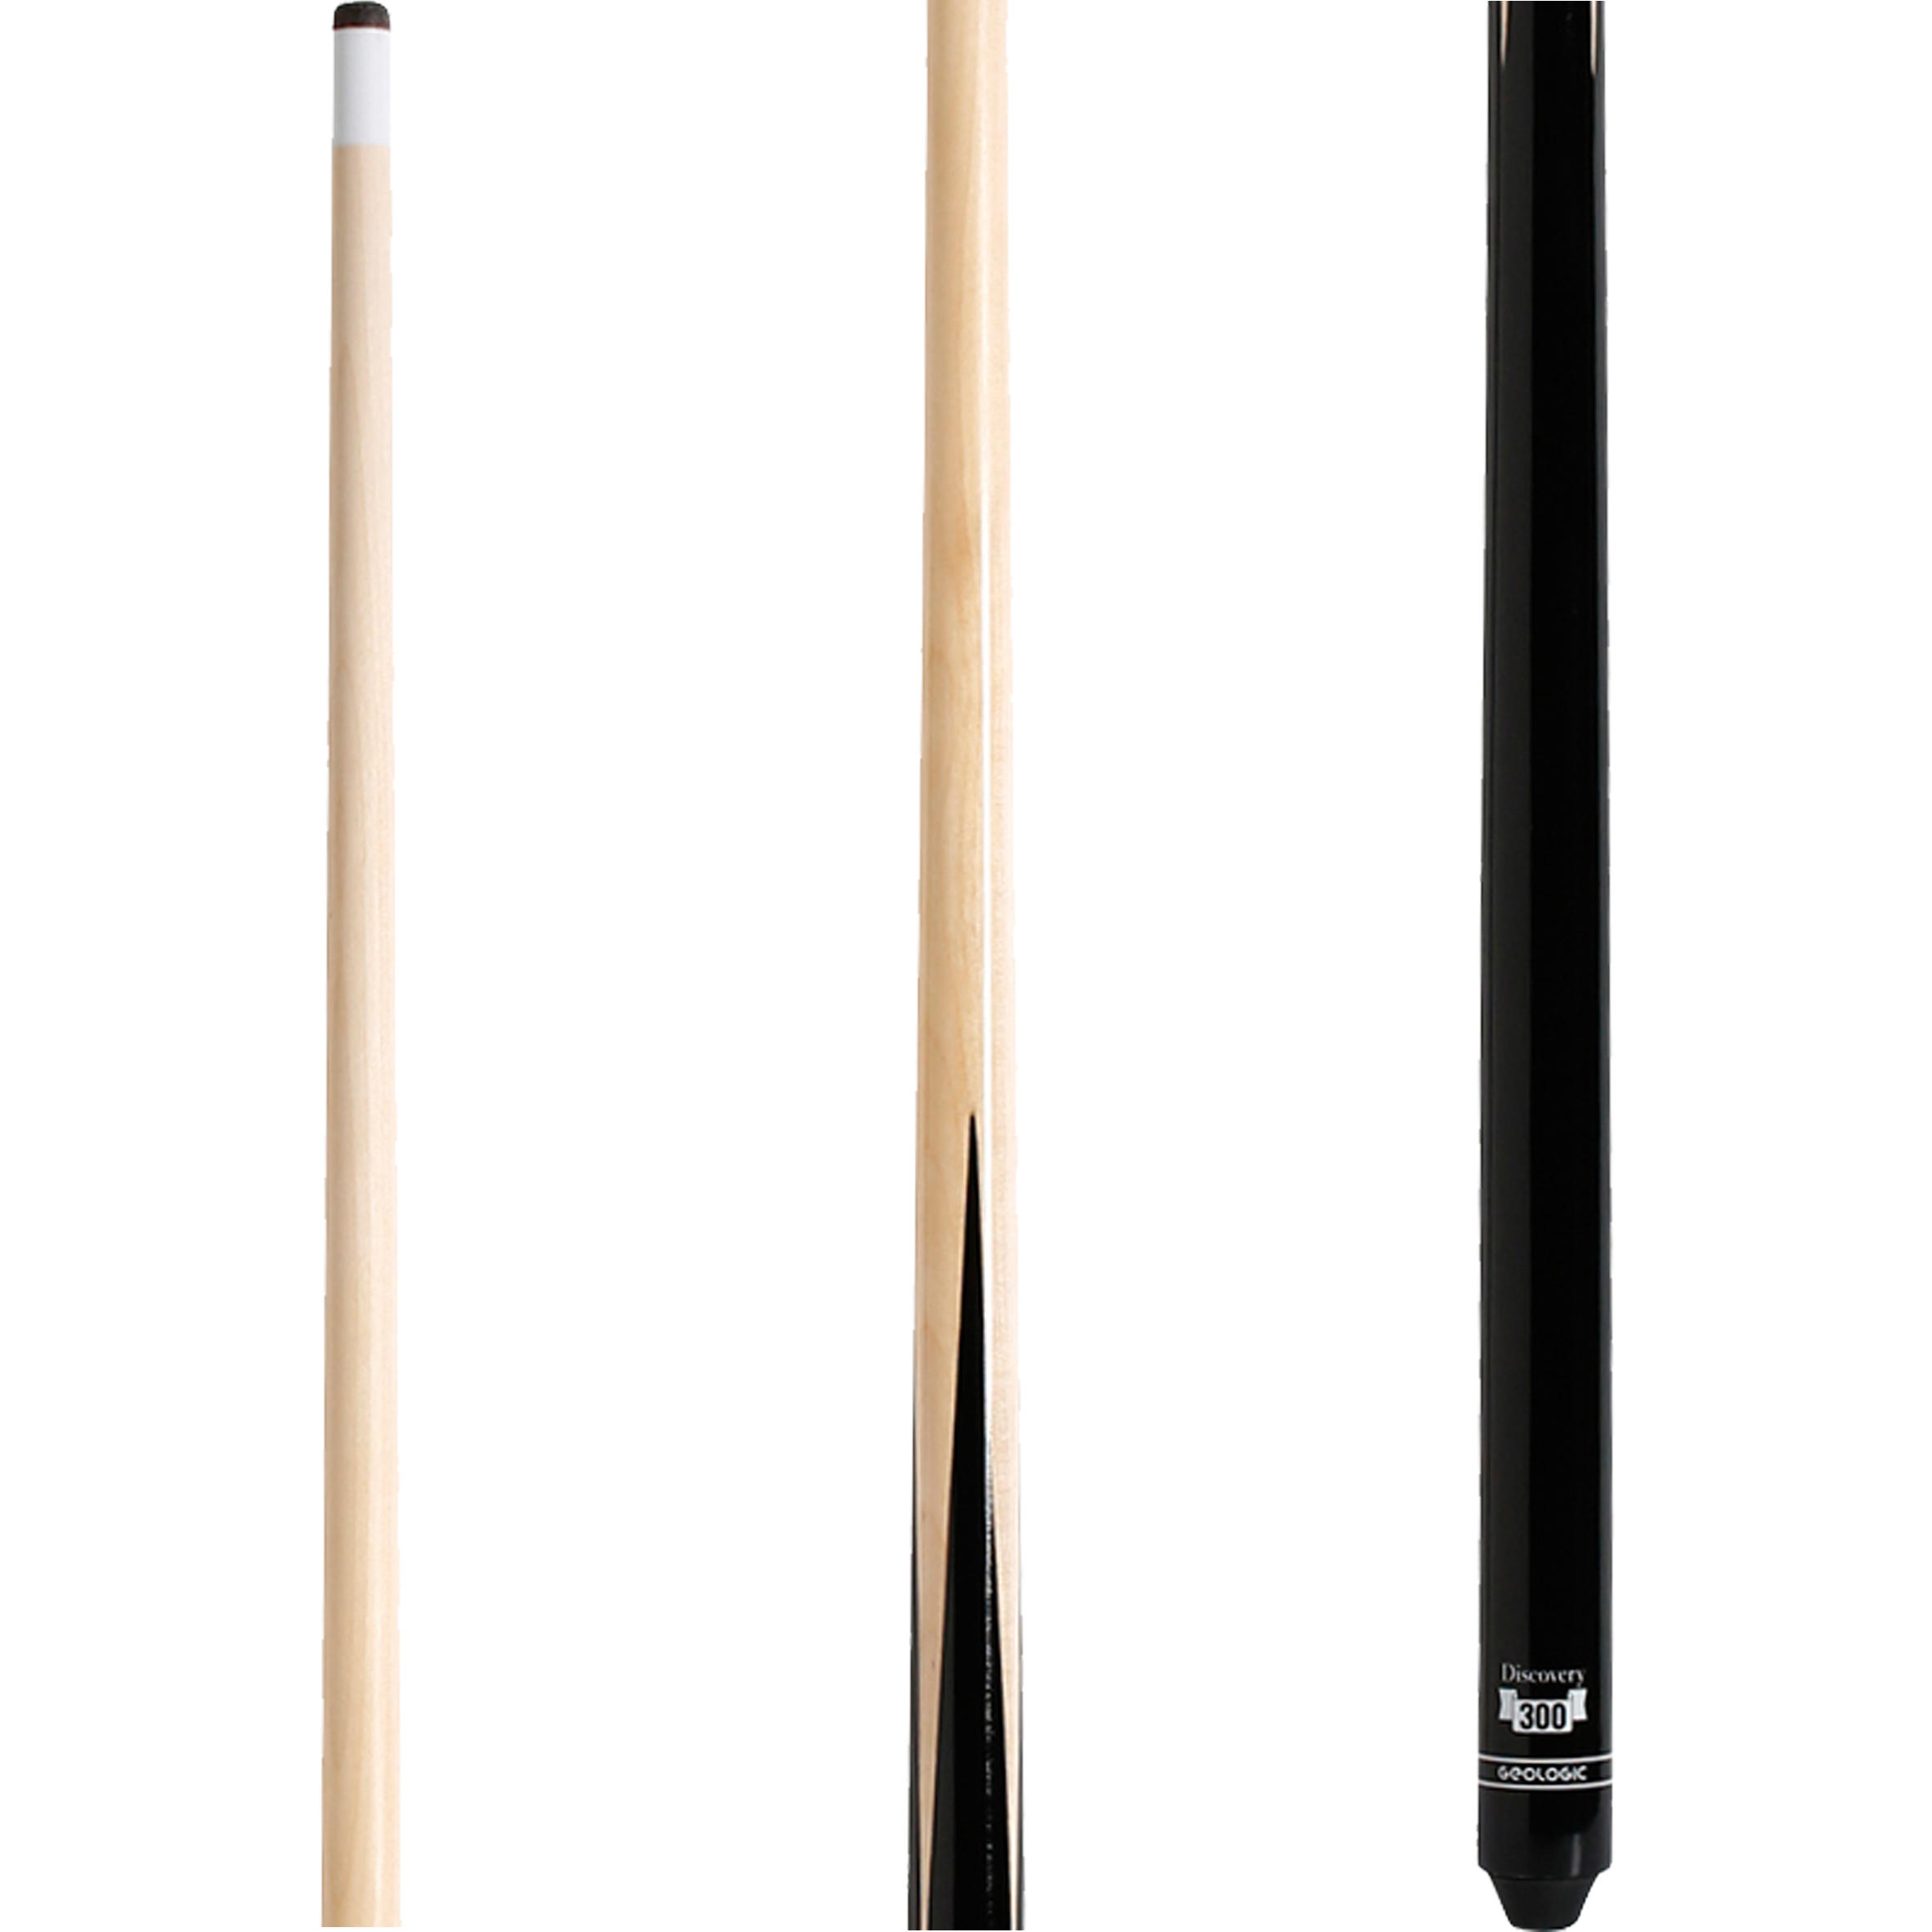 Discovery 300 American Pool Cue, 1-Part - 122 cm (48